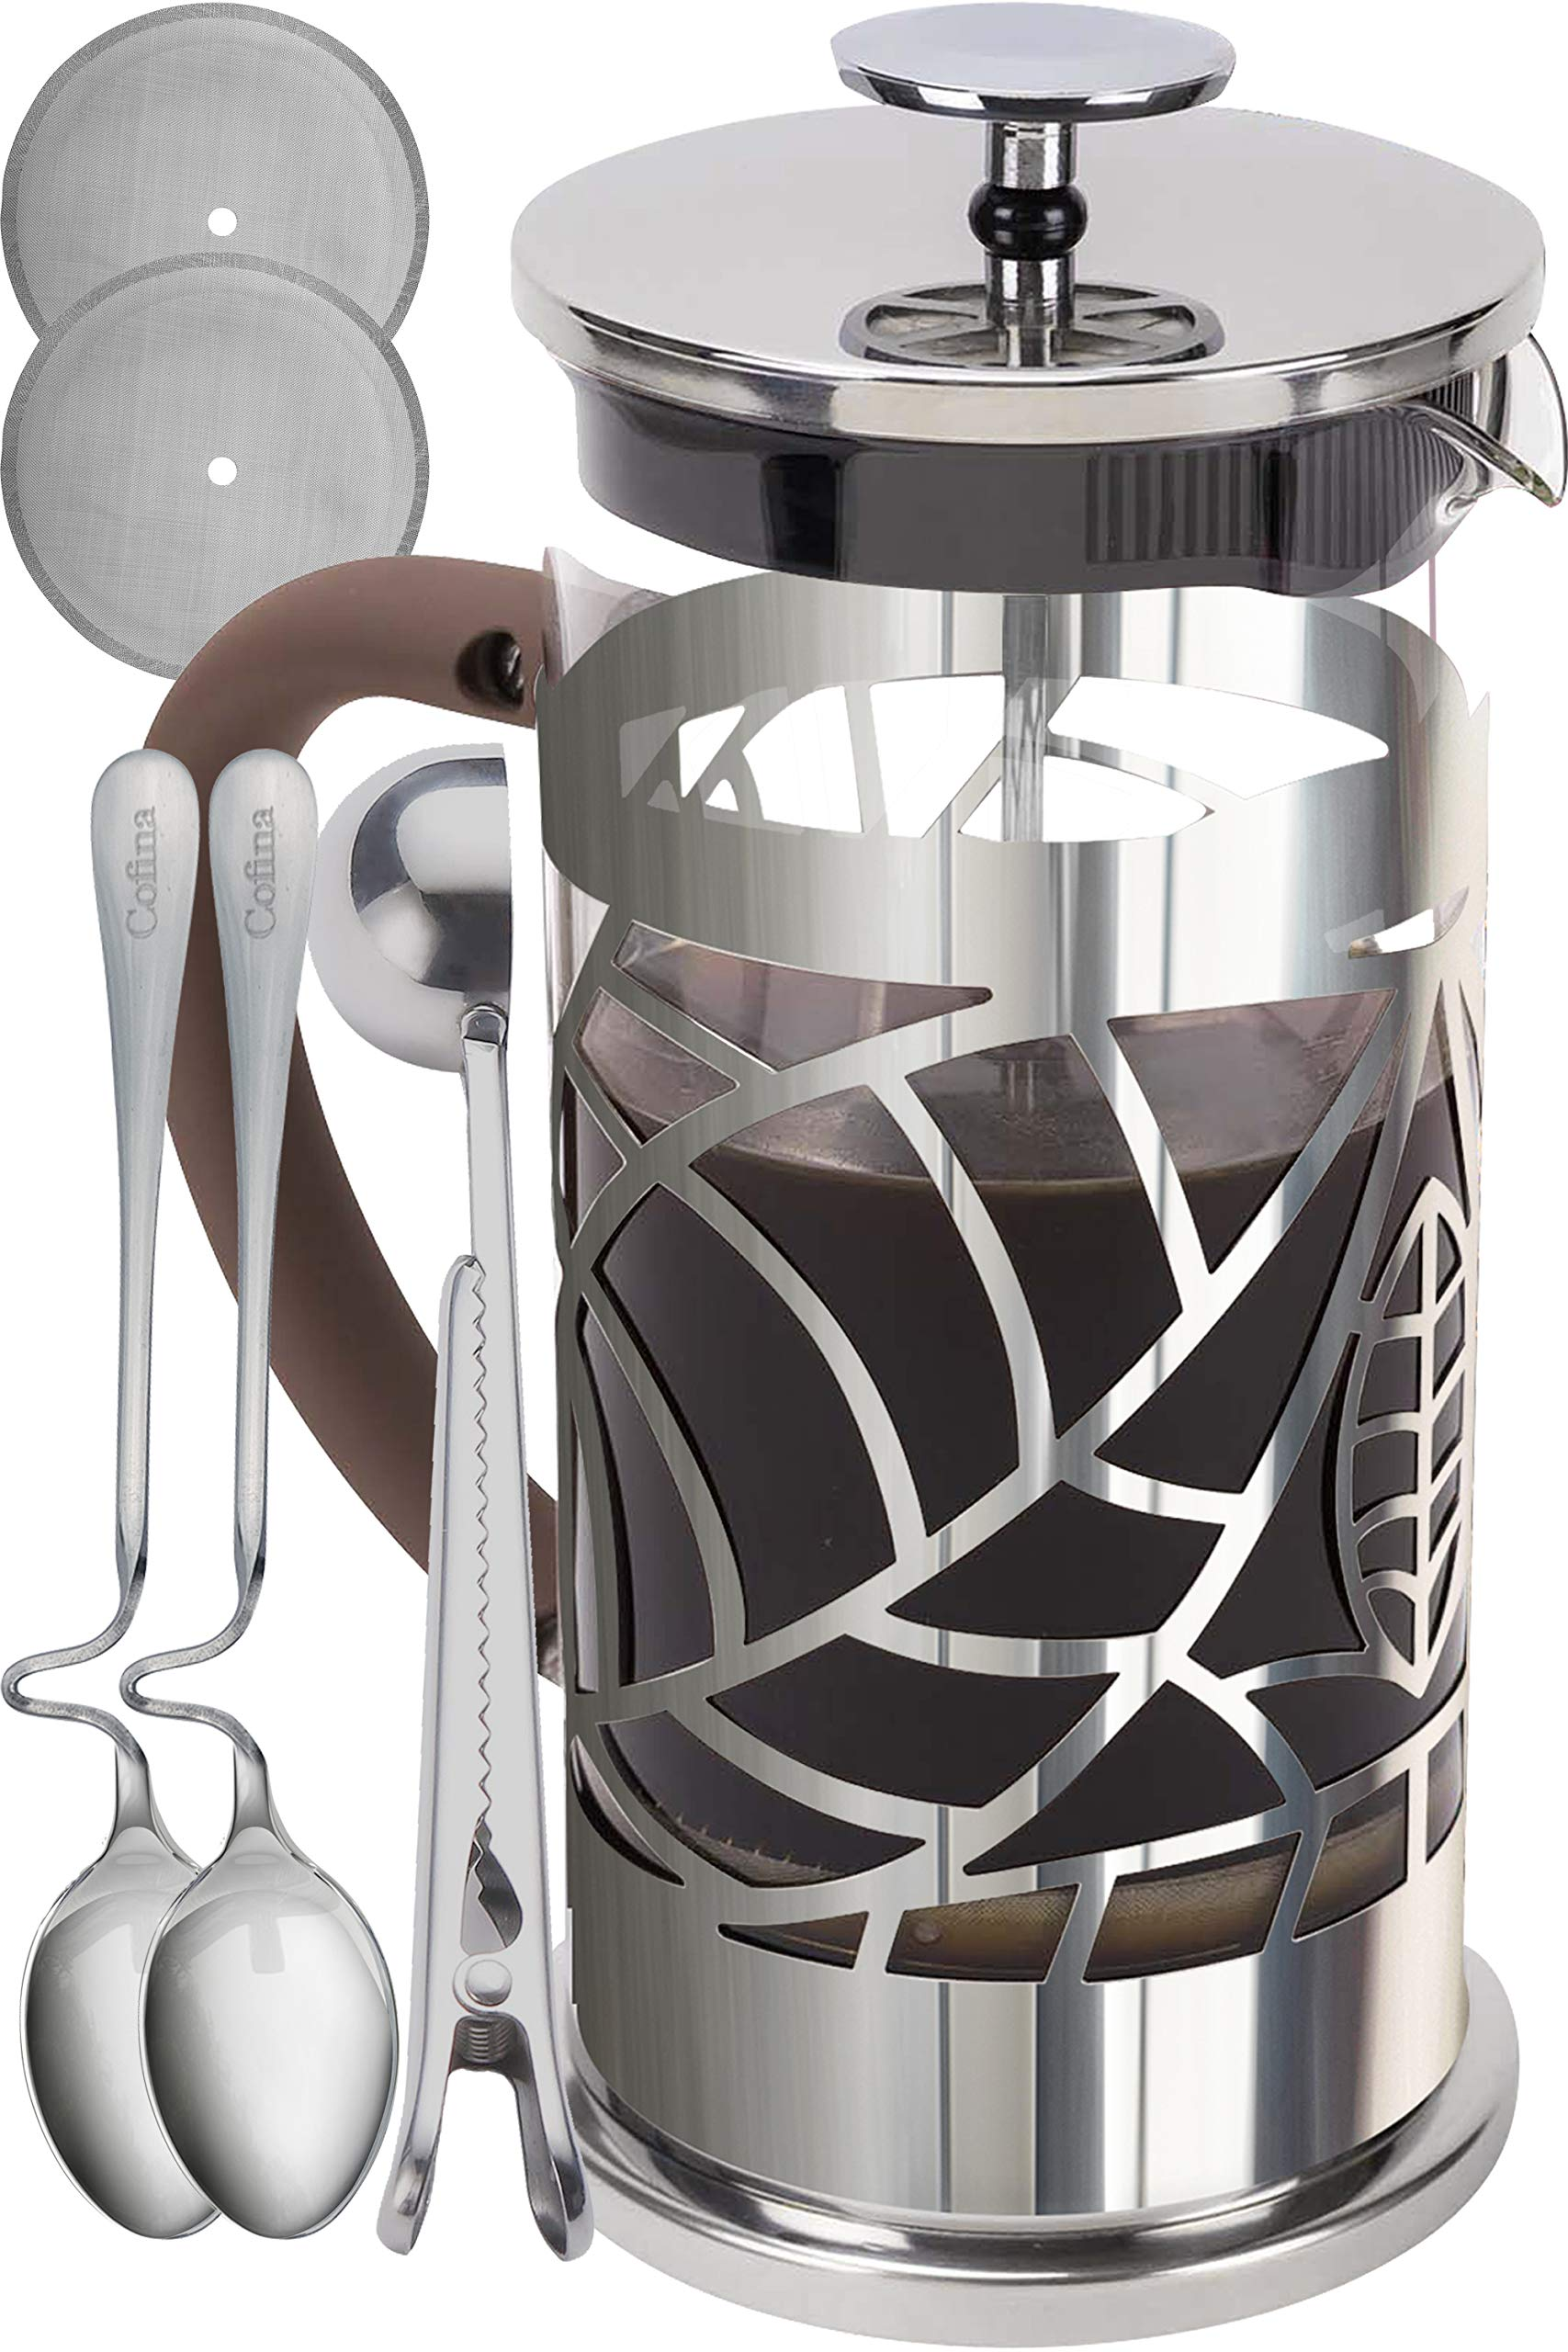 Cofina French Press Coffee Maker - 34 oz Large Stainless Steel & Glass French Coffee Press Gift Bundle by Cofina